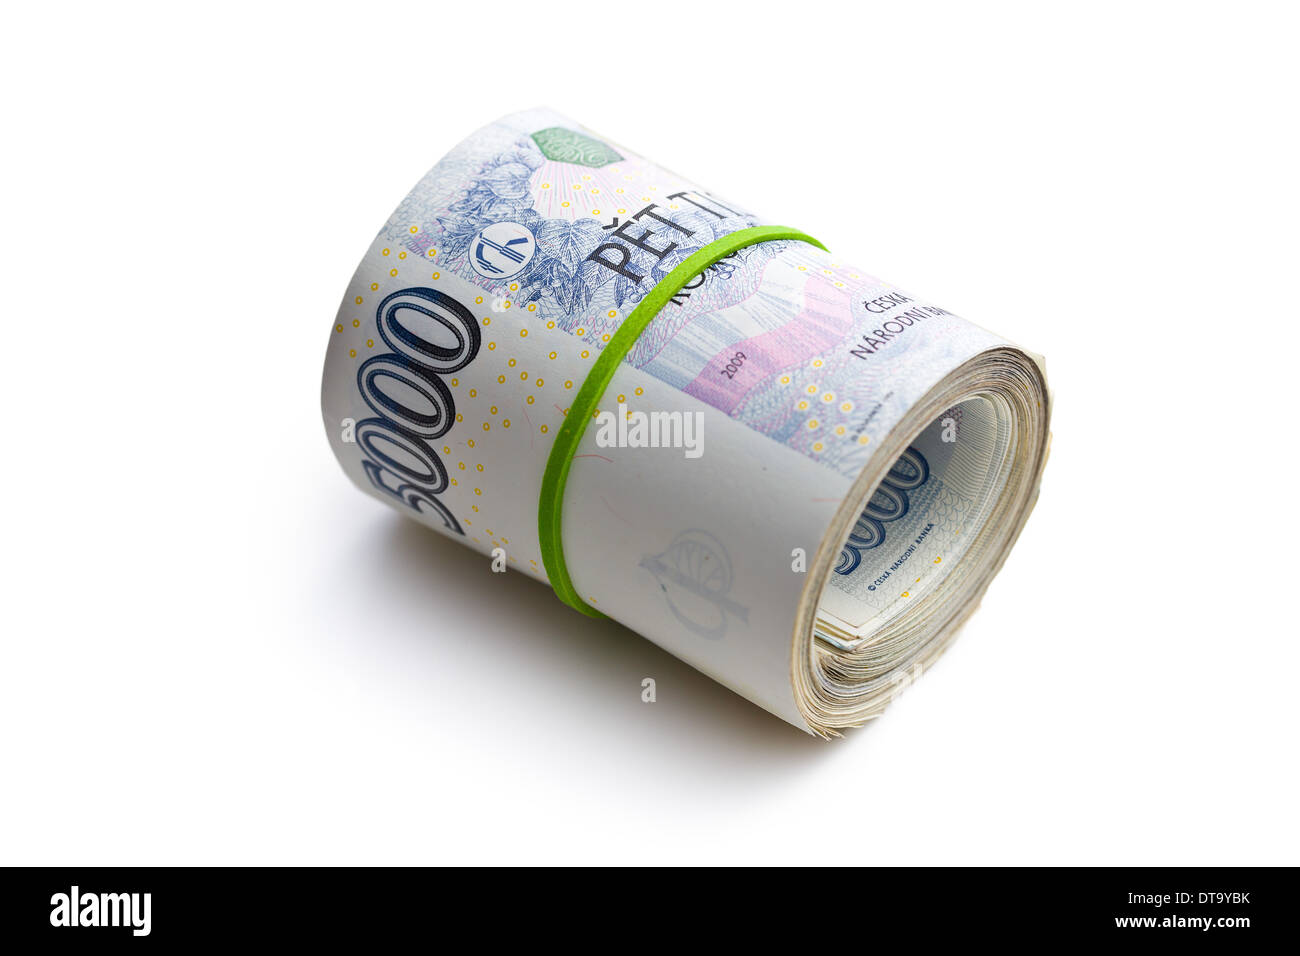 the roll of czech money on white background - Stock Image